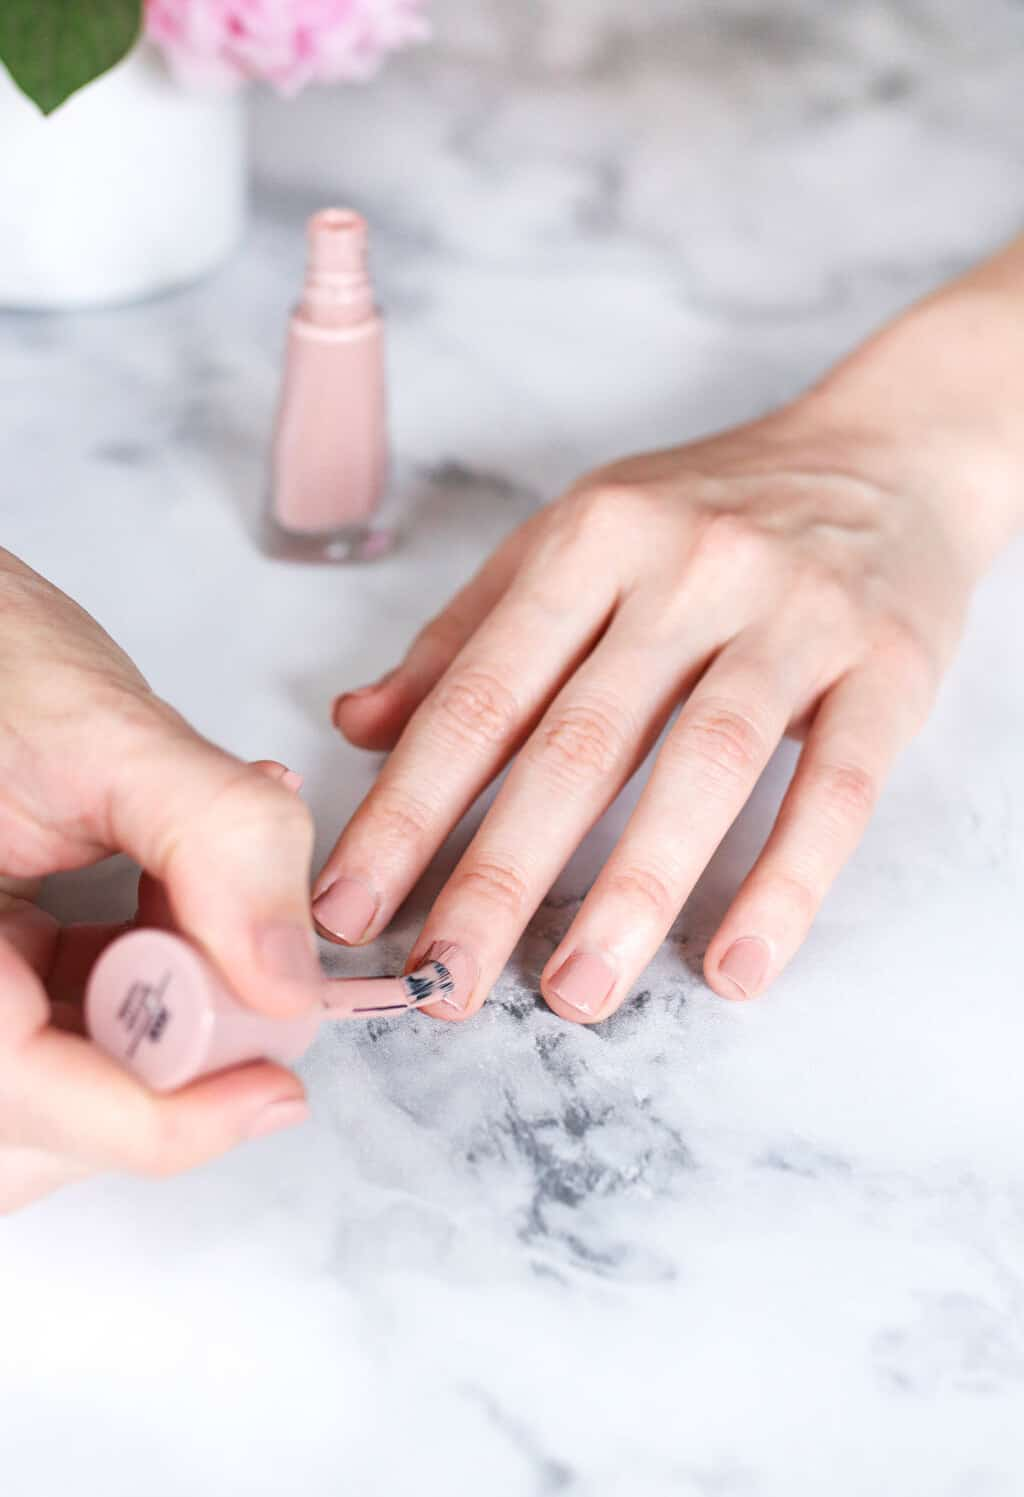 Easy ways to remove nail polish at home without nail polish remover